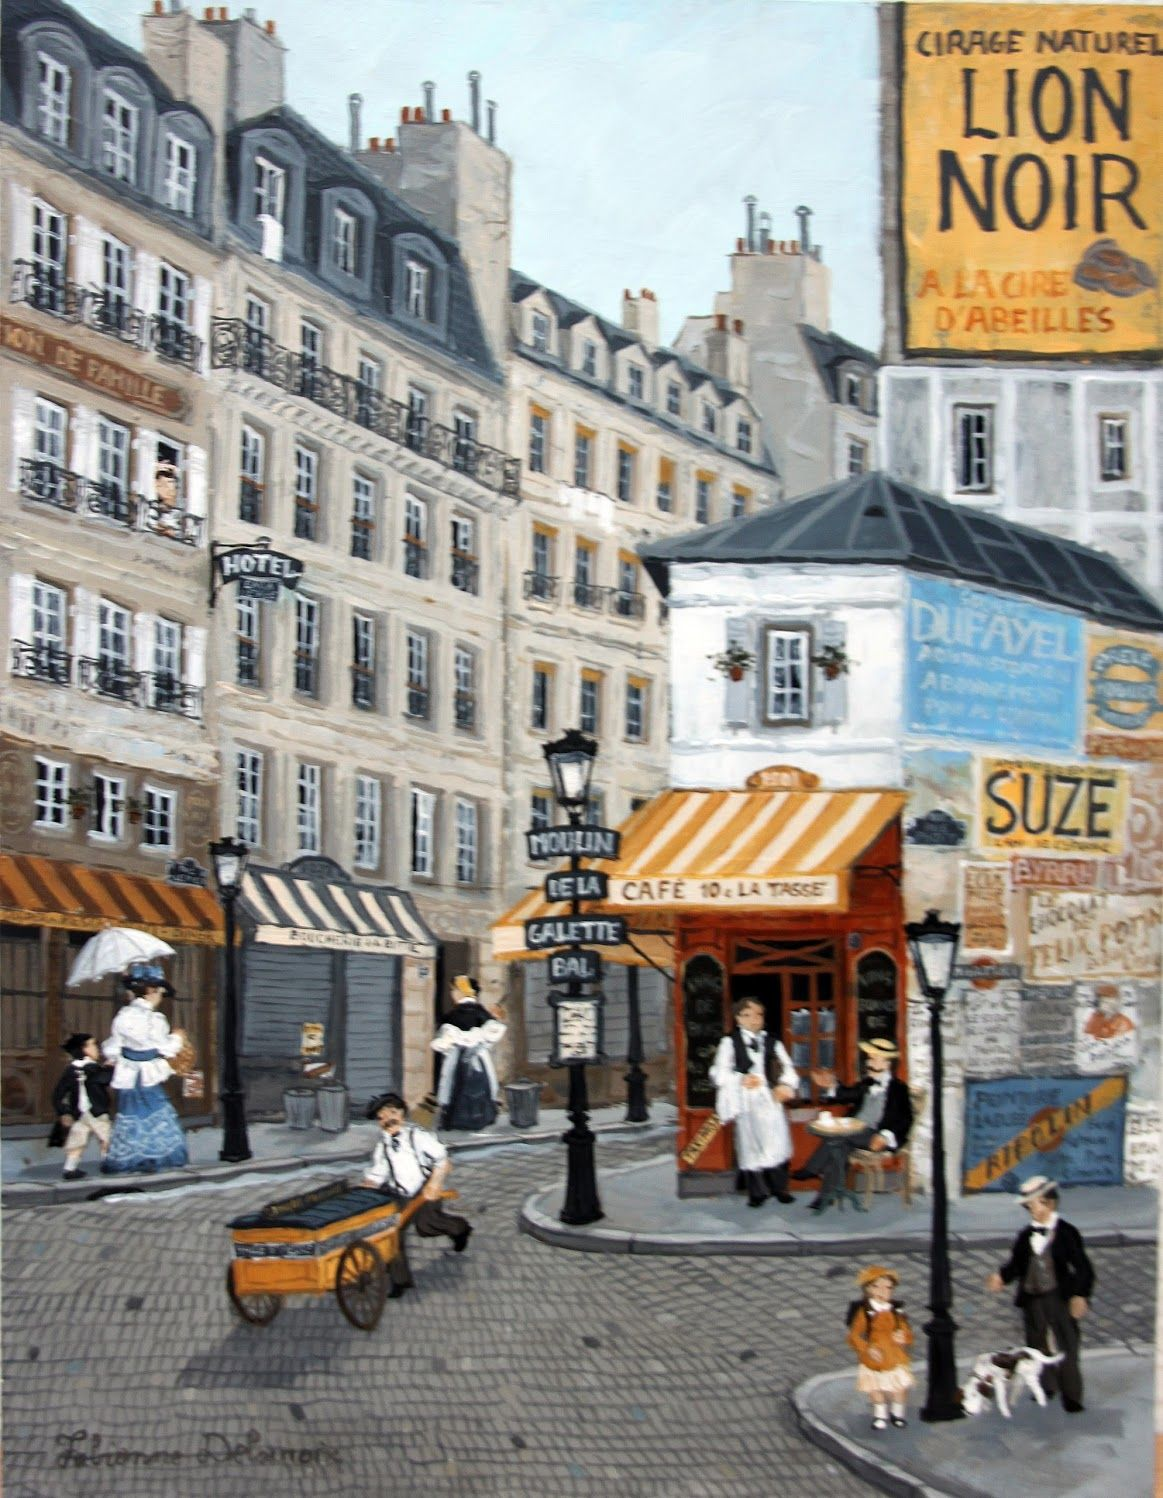 Rue Lepic Streetscape design, Photo, Street view